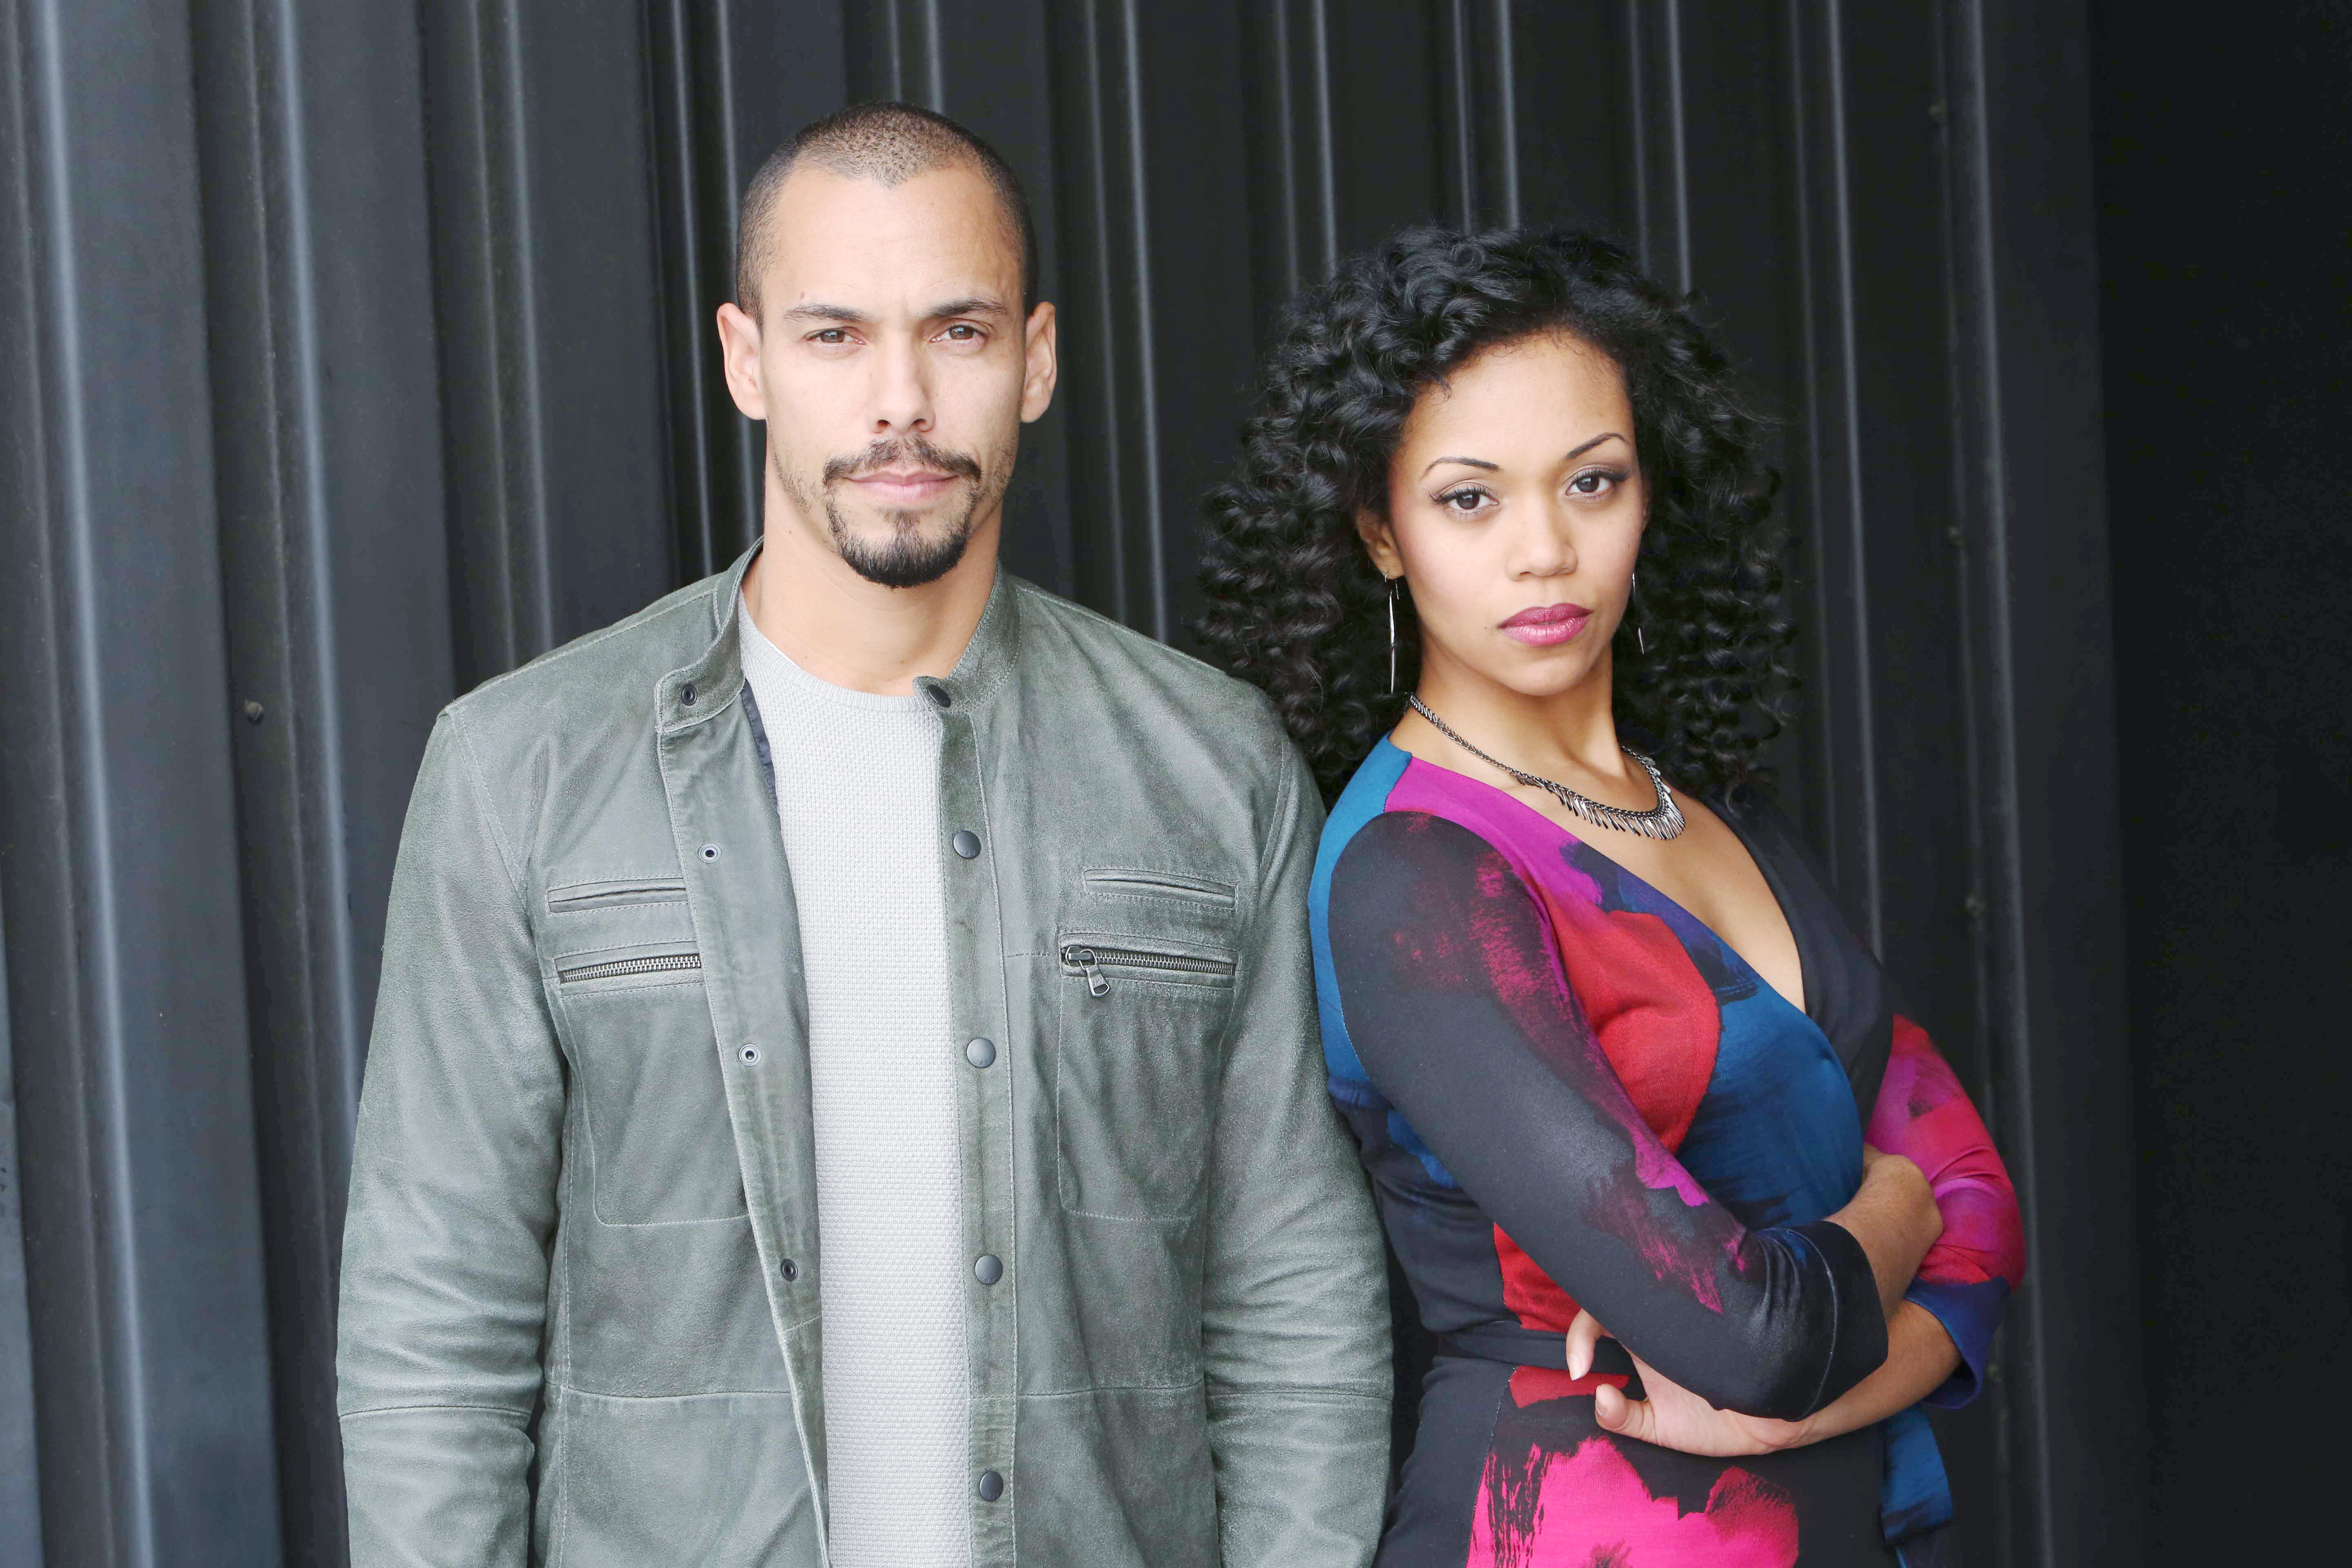 """Bryton James, Mishael Morgan """"The Young and the Restless"""" Set  CBS television City Los Angeles 01/10/17 © Howard Wise/jpistudios.com 310-657-9661"""